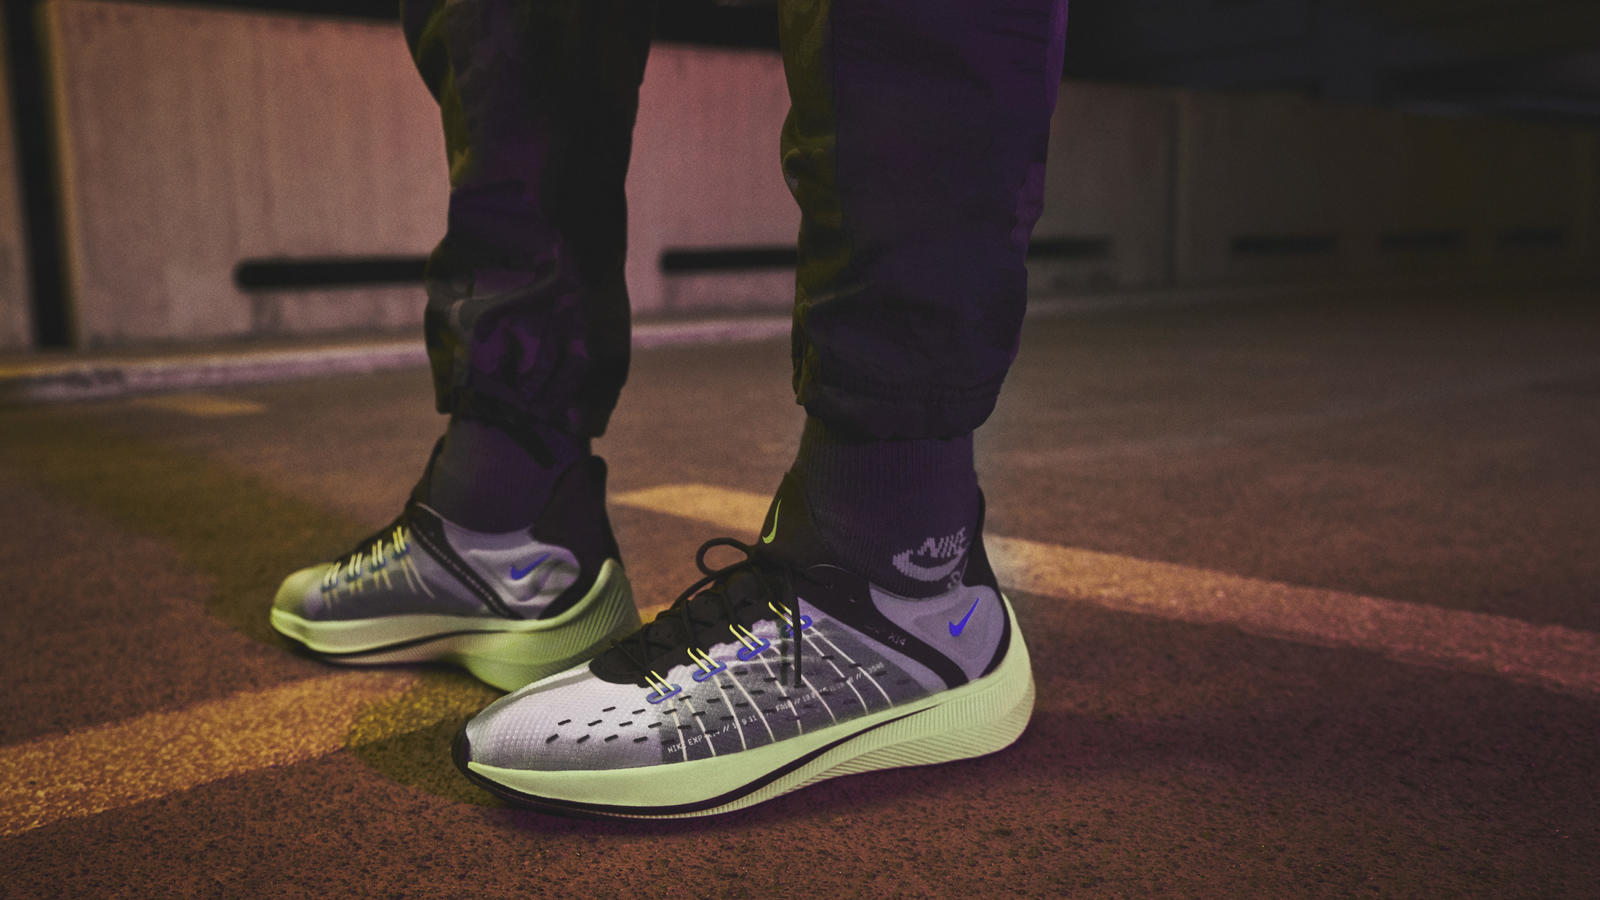 newest fa7a3 7dc57 June 18, 2018 - The Nike Sportswear EXP-X14 both remembers Nikes history  and pushes the boundaries of lifestyle footwear through the use of numbers  and ...